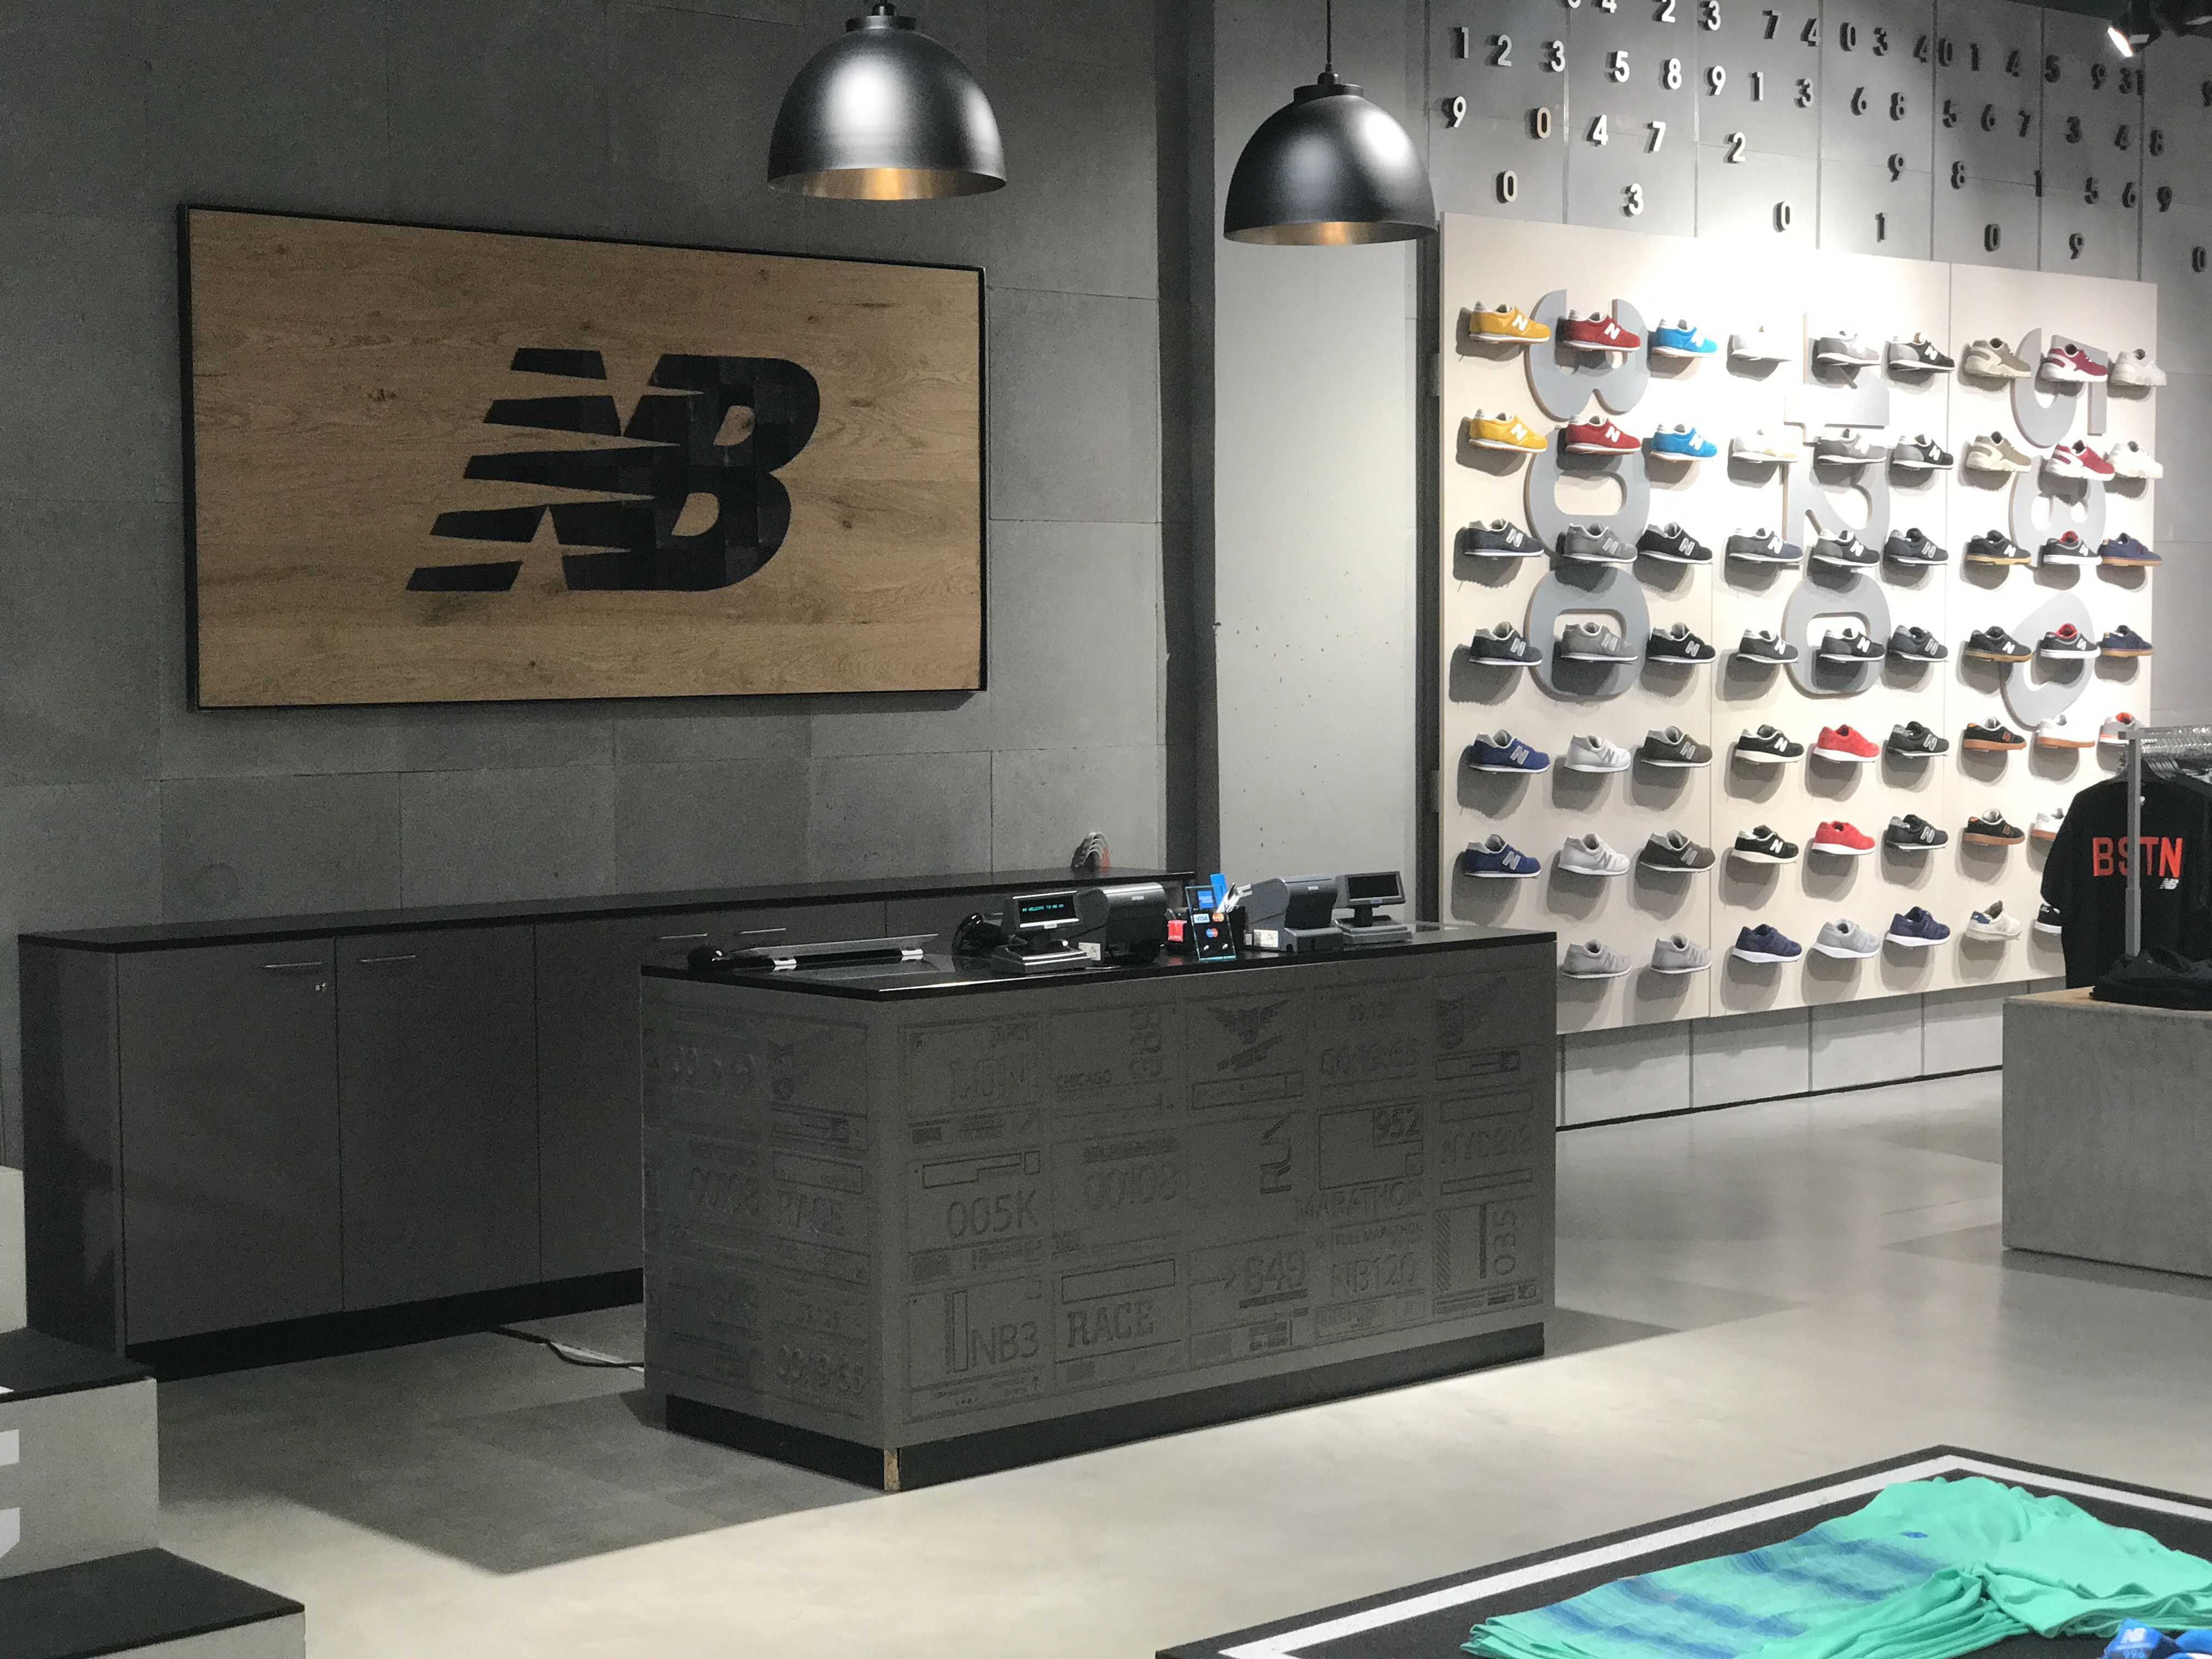 cc580fed6a New Balance - Central London, April 2017 Point of sale #sportbrands #retail  #vm #visualmerchandising #newbalance